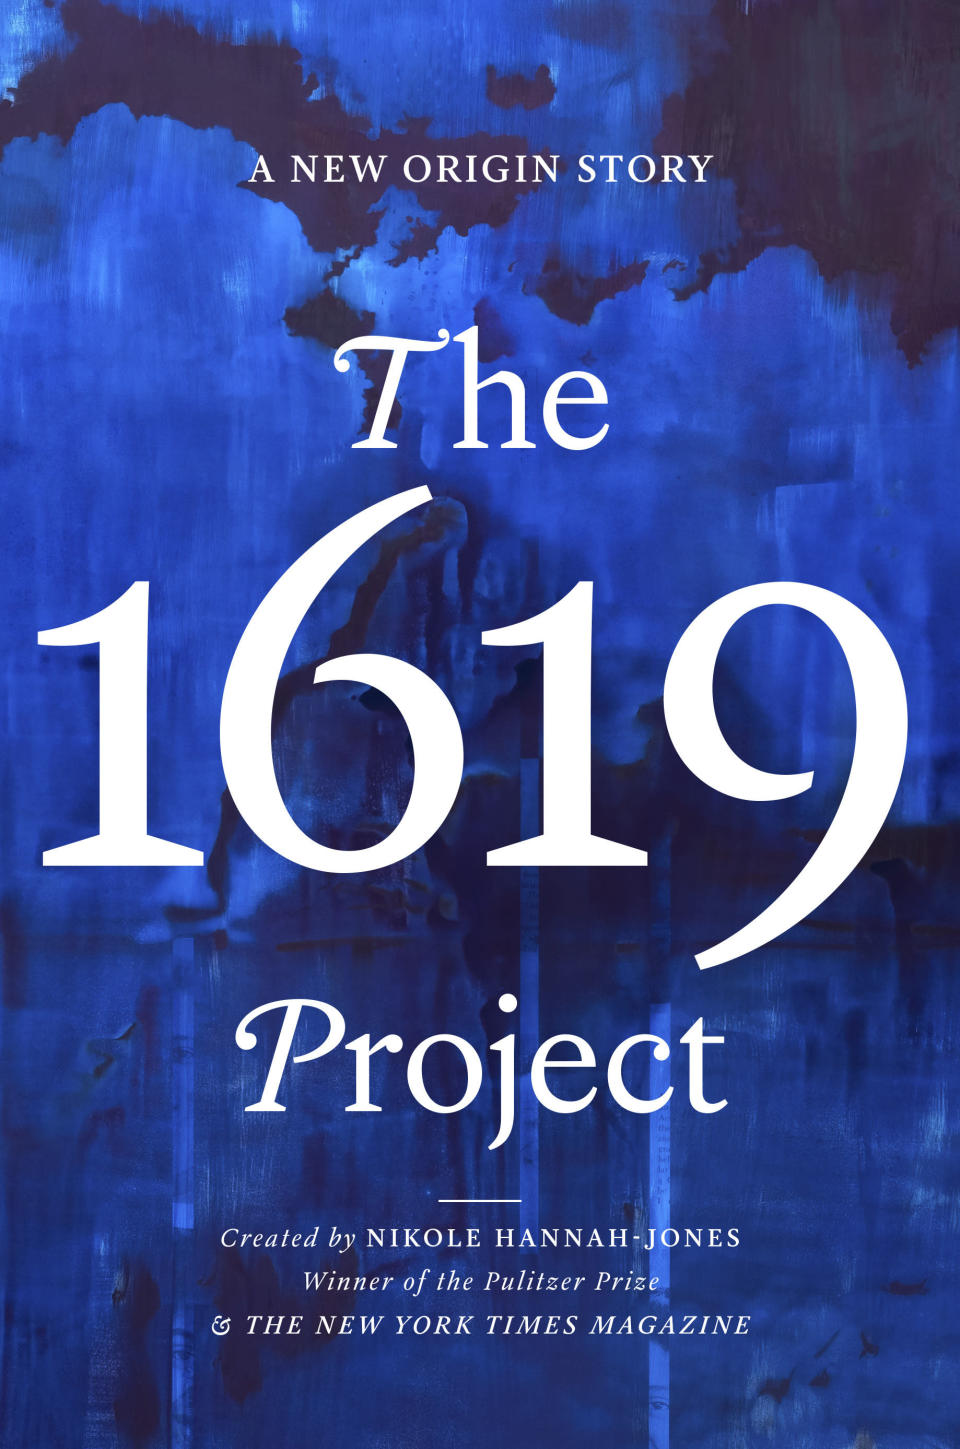 """This cover image released by One World shows """"The 1619 Project: A New Origin Story"""" by Nikole Hannah-Jones, releasing Nov. 16. (One World via AP)"""